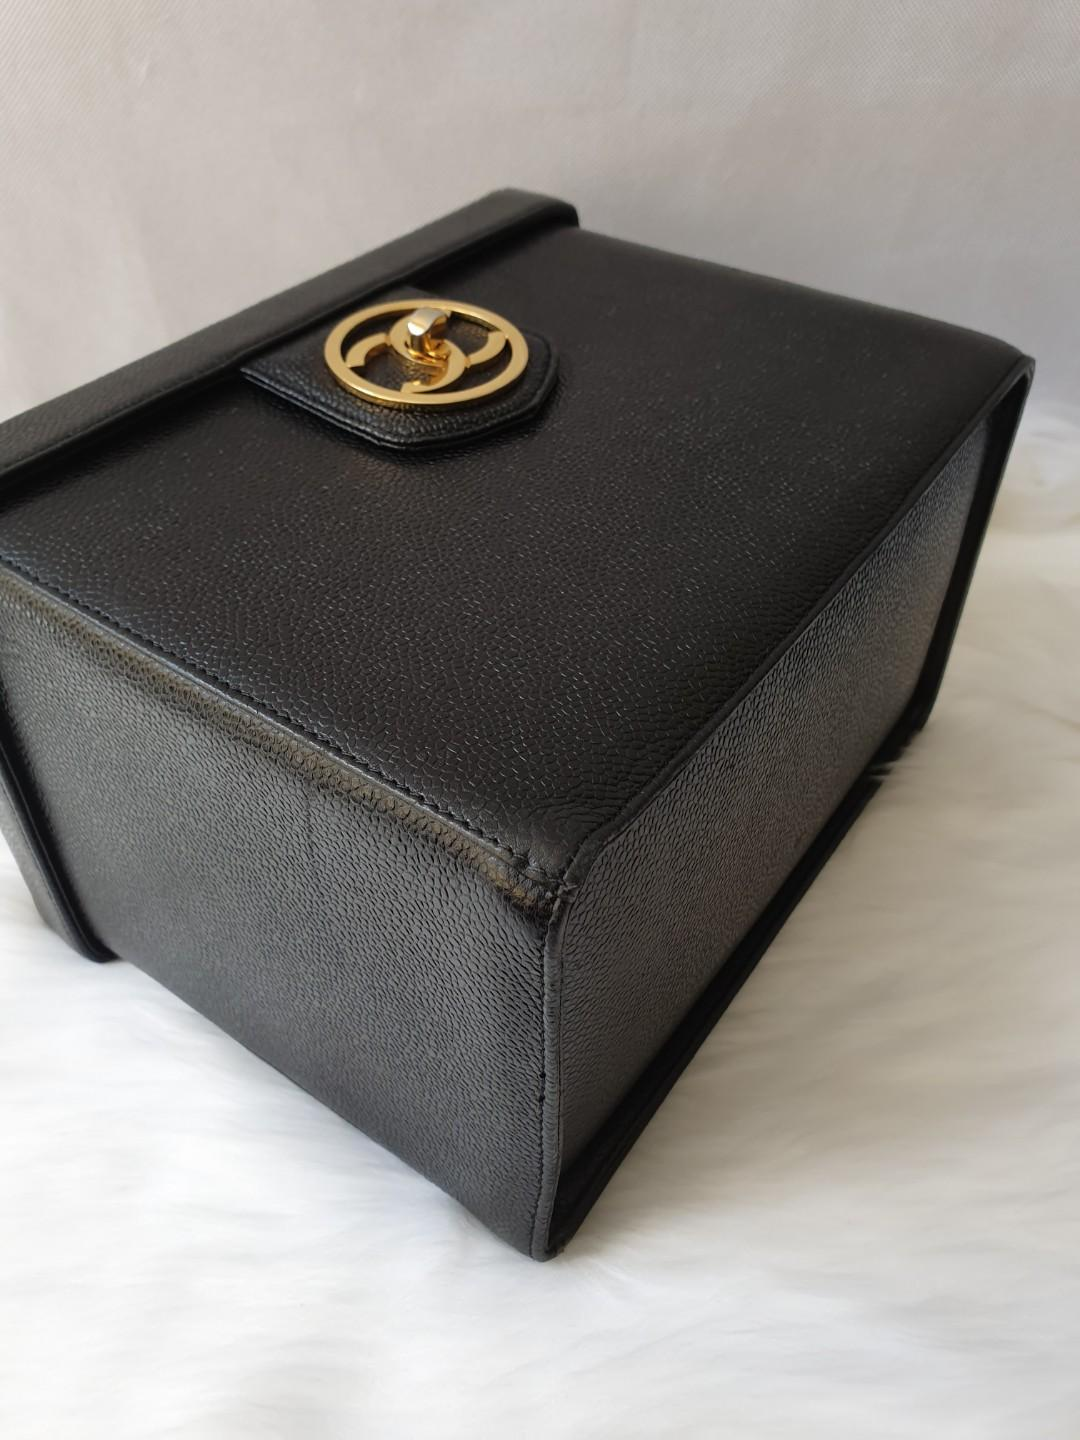 💎Rare Authentic chanel caviar vanity box black bag